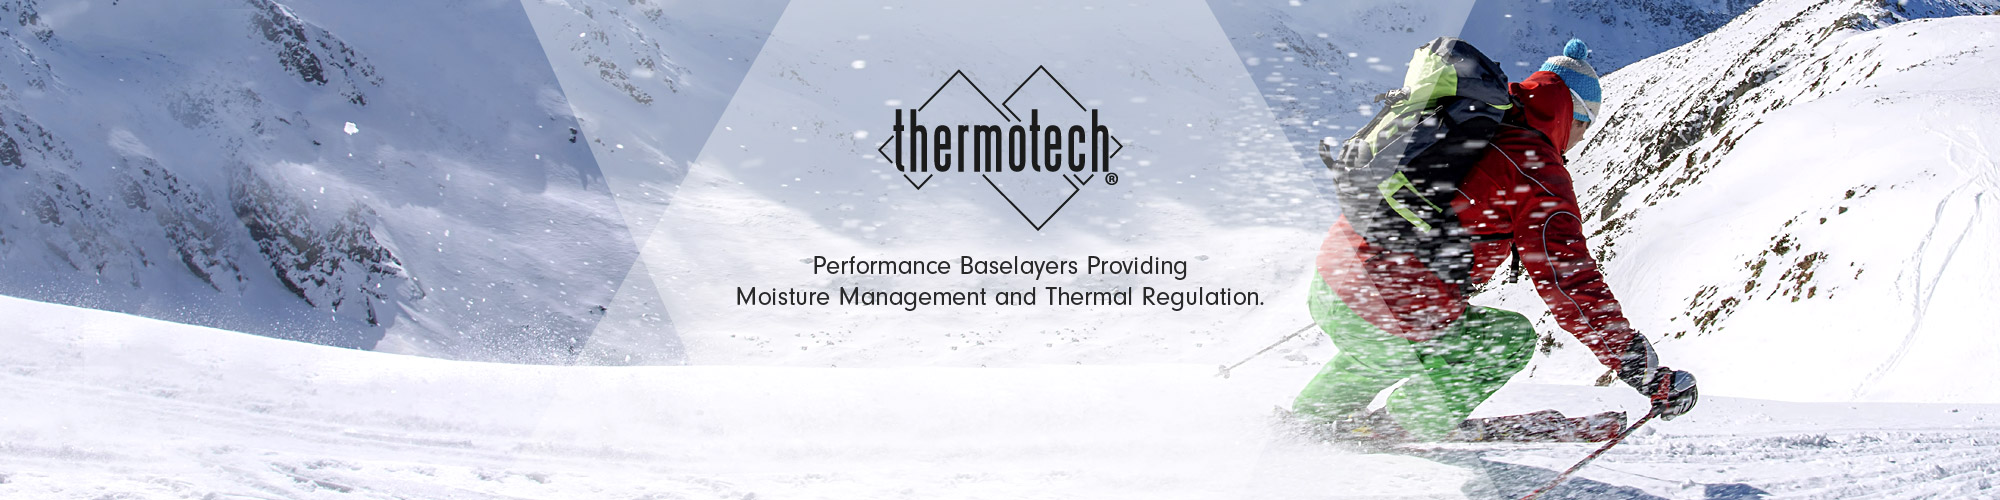 Thermotech Ski Apparel